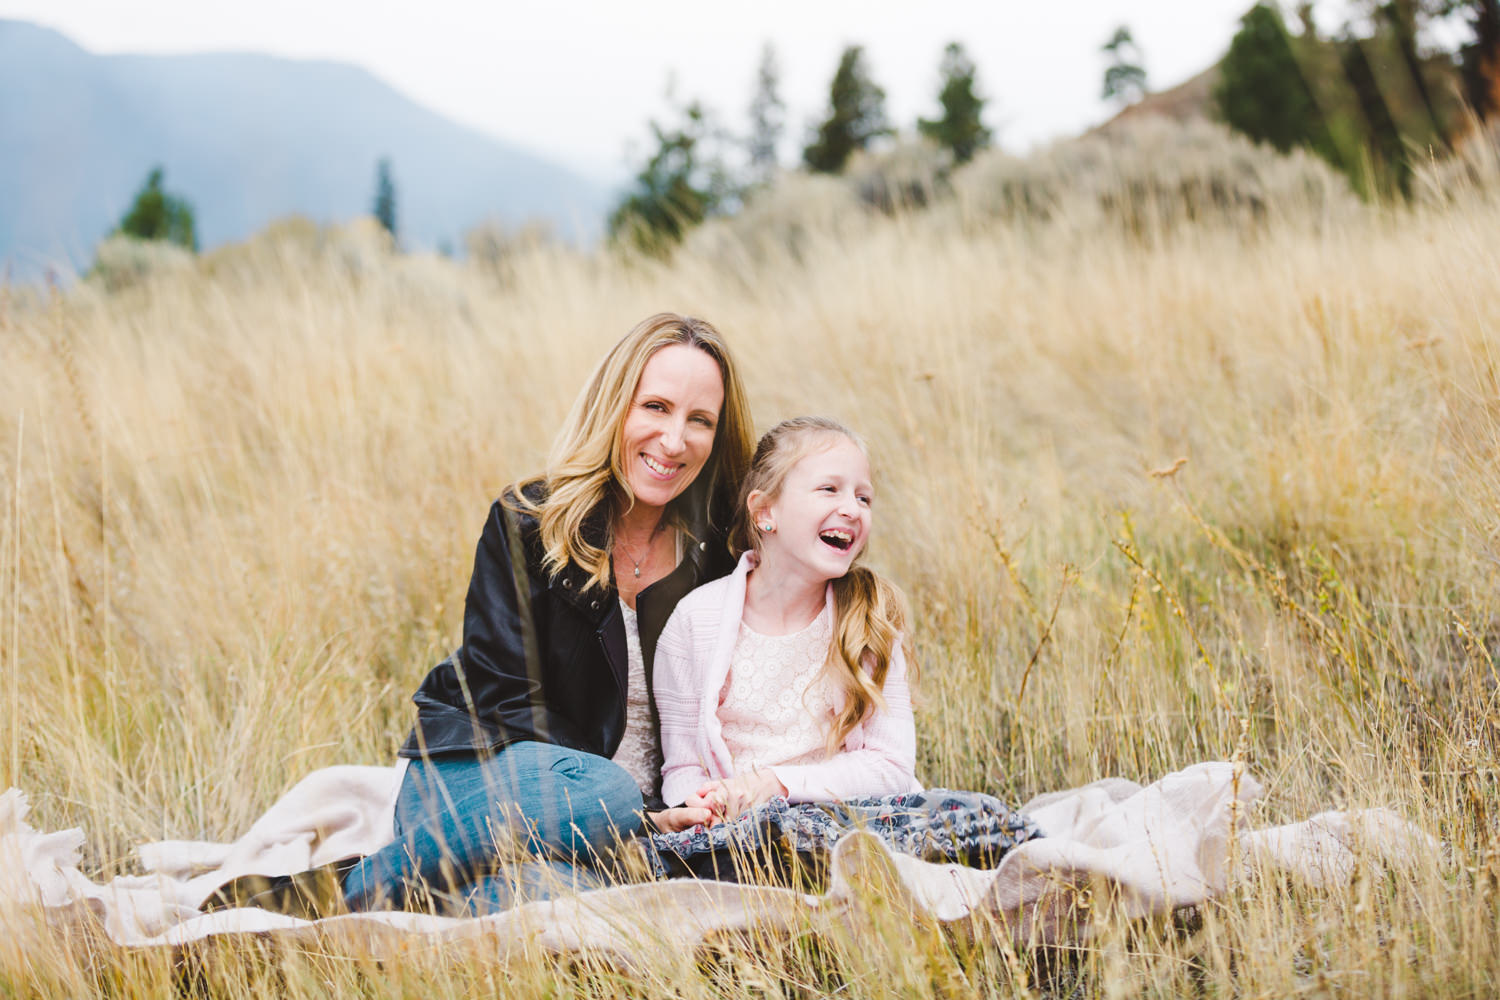 knox-mountain-family-photos-knox-mountain-photographer-knoz mountain-kelowna-bc-knox-moutain-mother-daughter-photography-by-julie-dorge (3 of 27).jpg